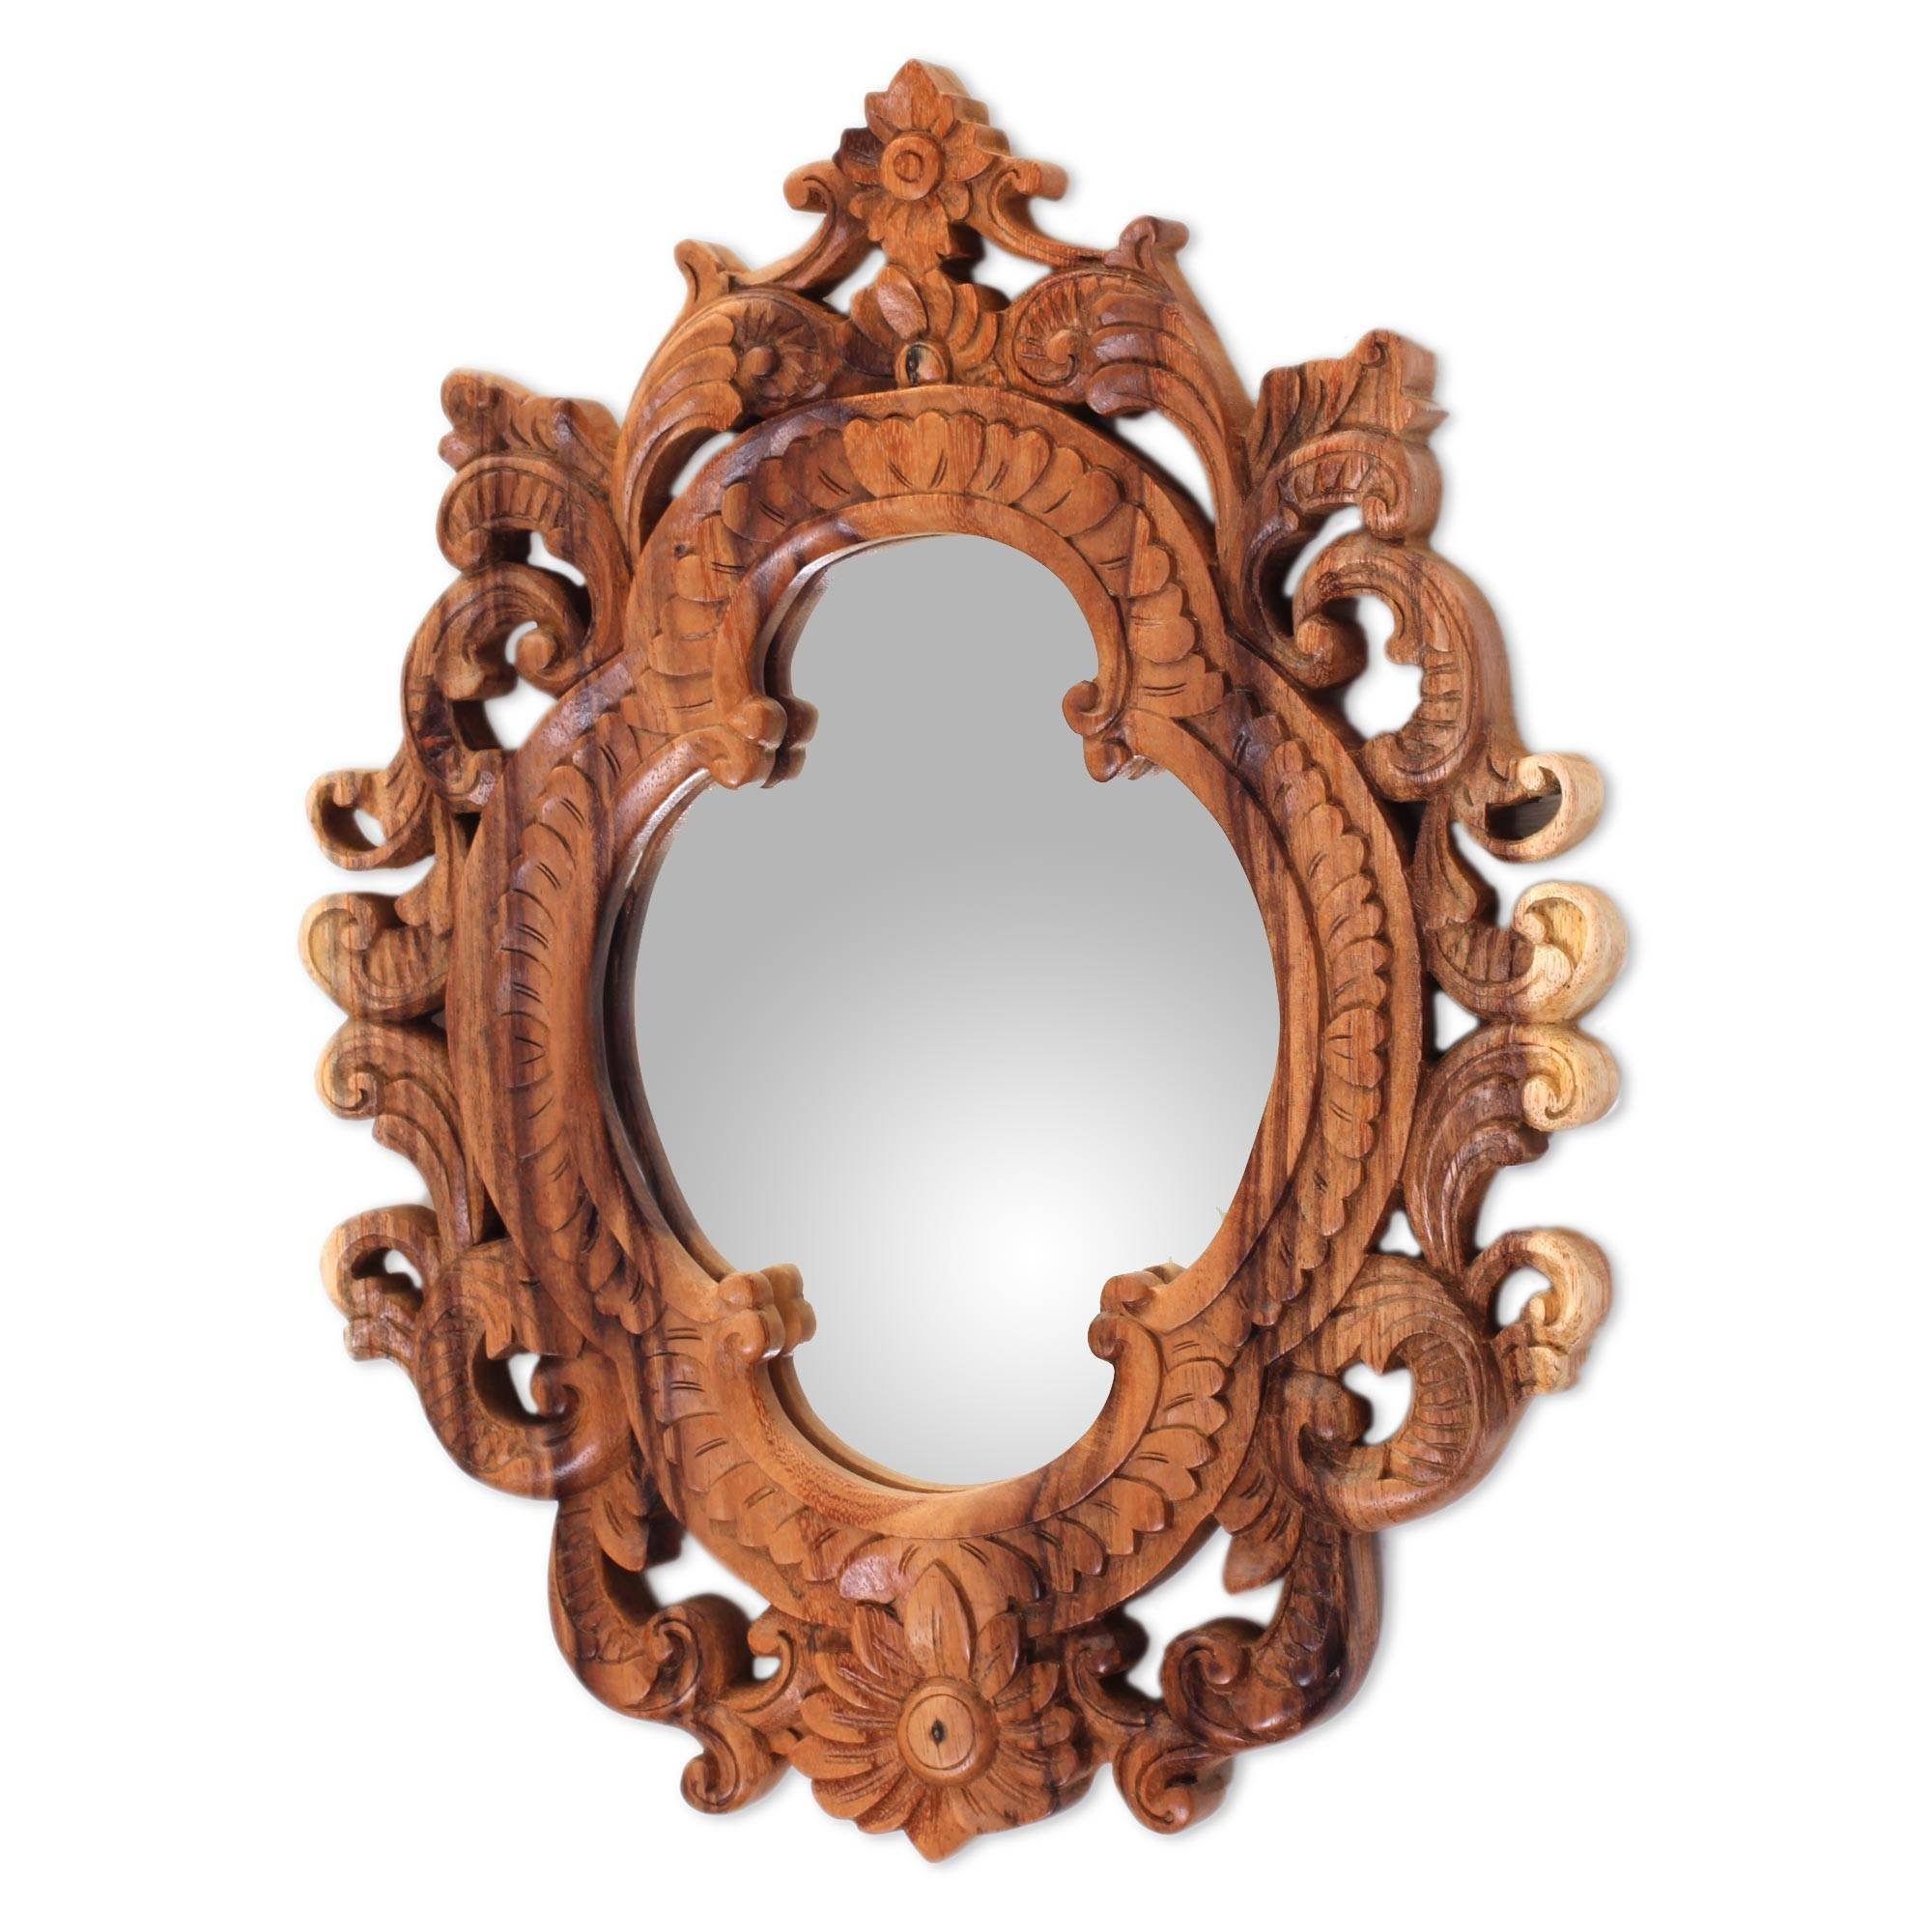 NOVICA Natural Suar Wood East Meets West Hand Carved Wall Mirror From Indonesia 'Mataram Rococo' by NOVICA (Image #1)